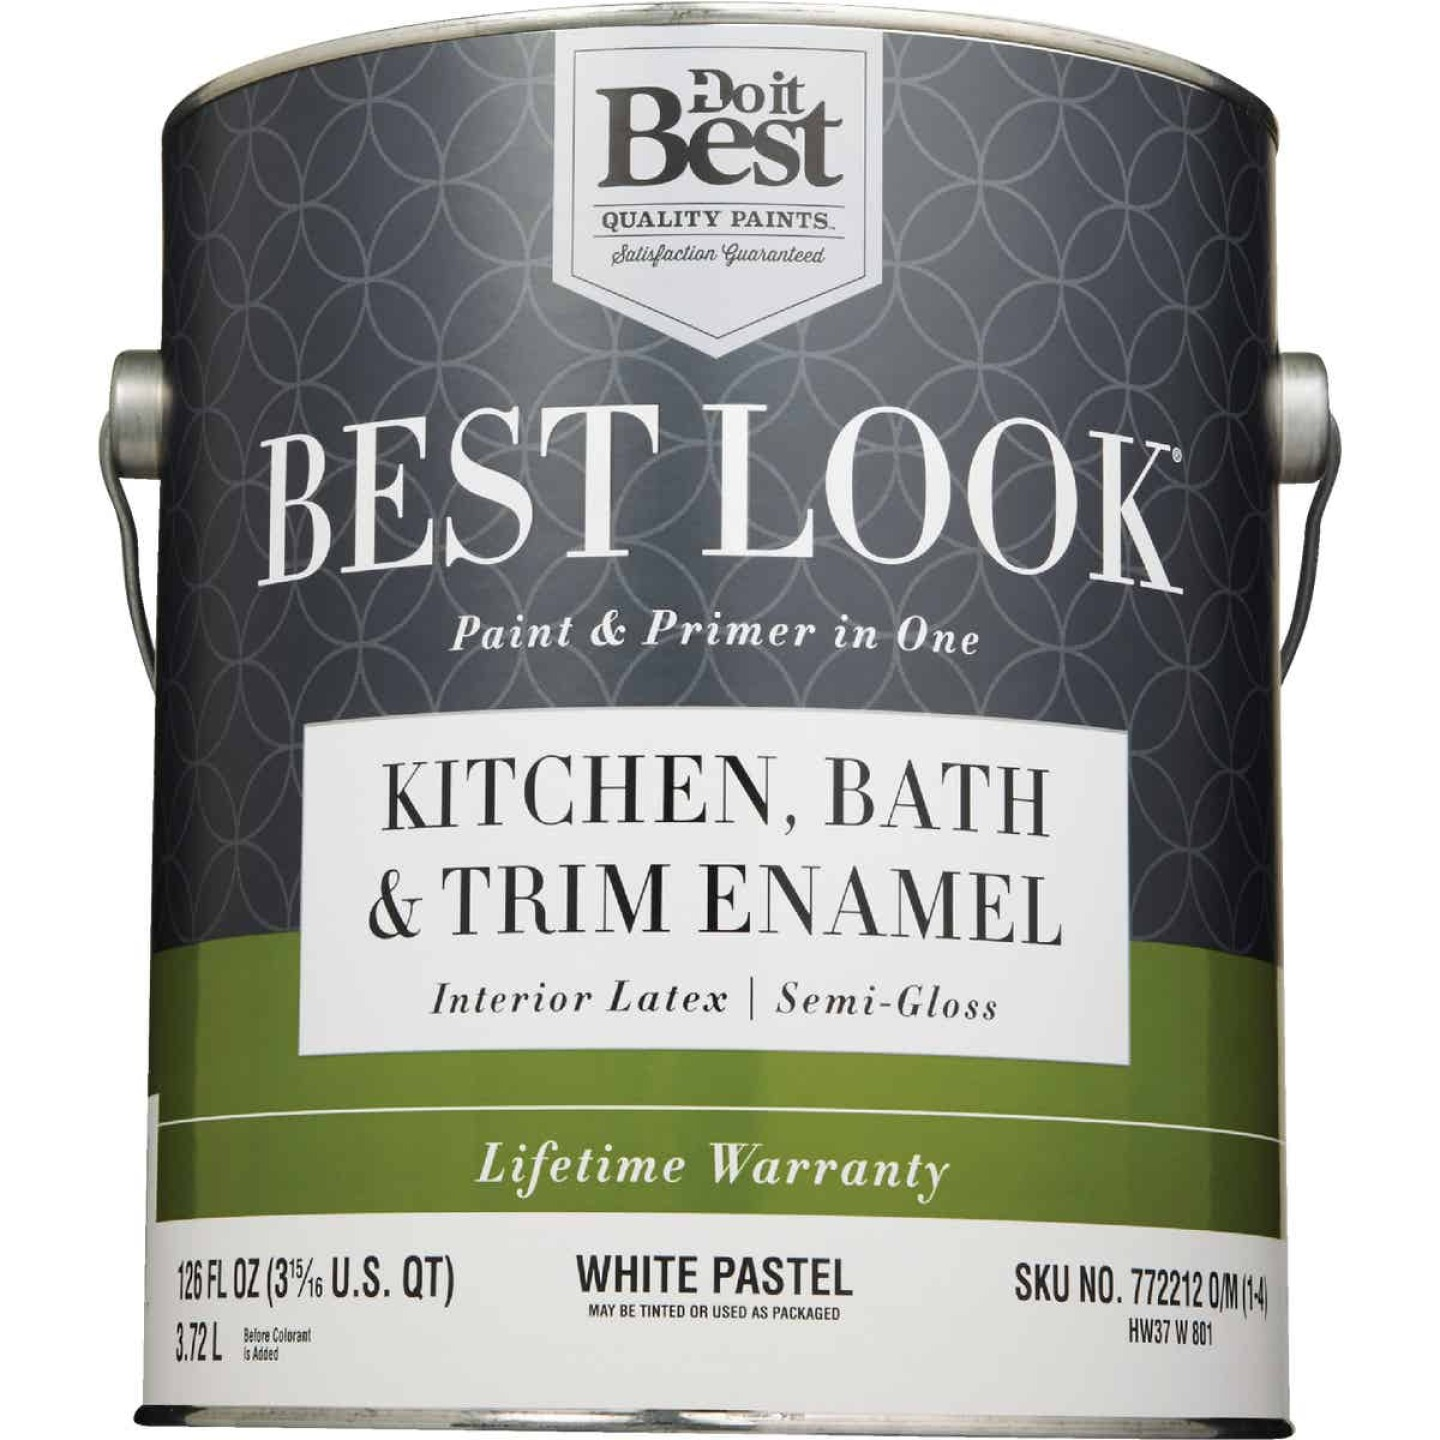 Best Look Latex Paint & Primer In One Kitchen Bath & Trim Semi-Gloss Interior Wall Paint, White-Pastel Base, 1 Gal. Image 2